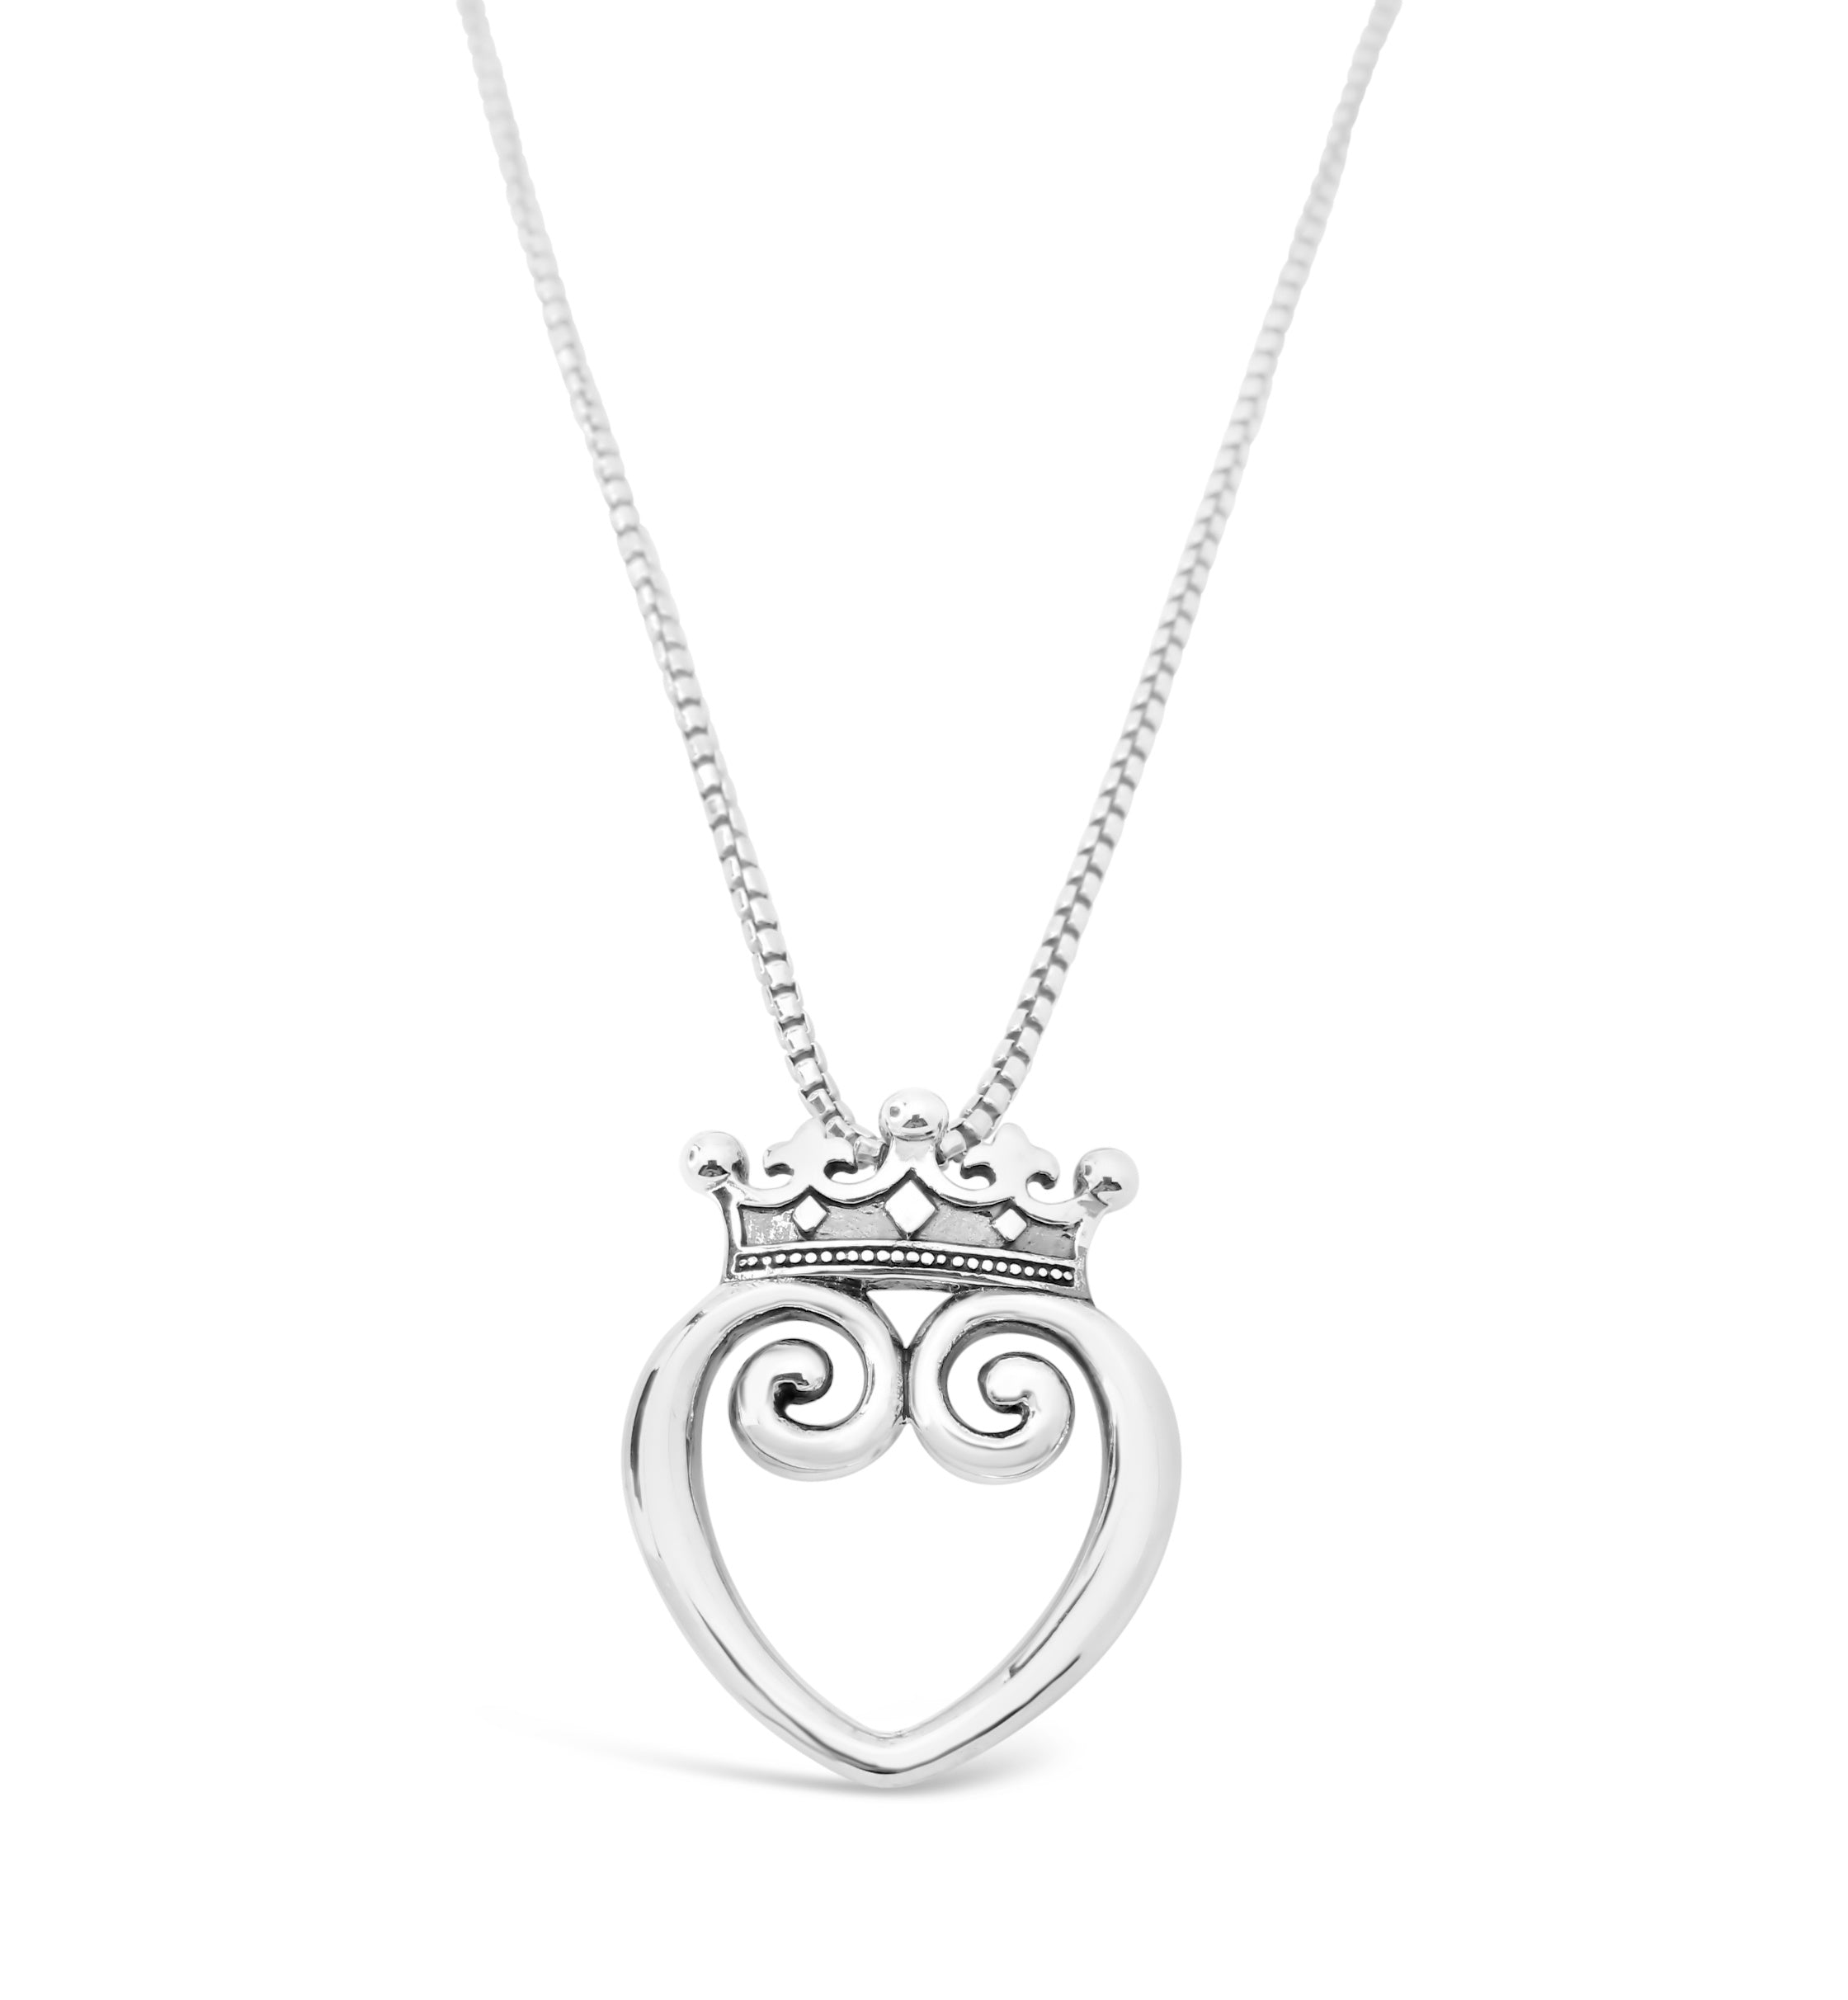 Queen of Hearts Pendant - Medium